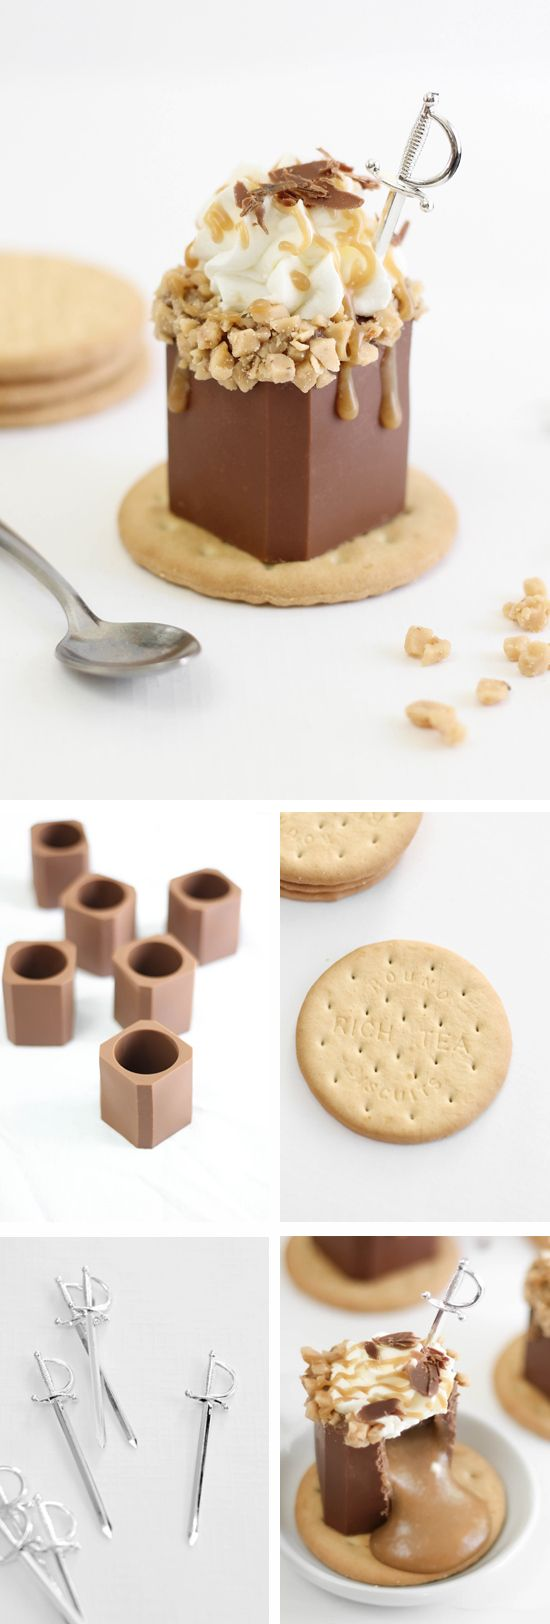 These Butter Toffee Candy Bar Shots look amazing, what a unique idea that's memorable for your guests - Pleaase click for 18 Other Shot Glasses You Can Eat...x